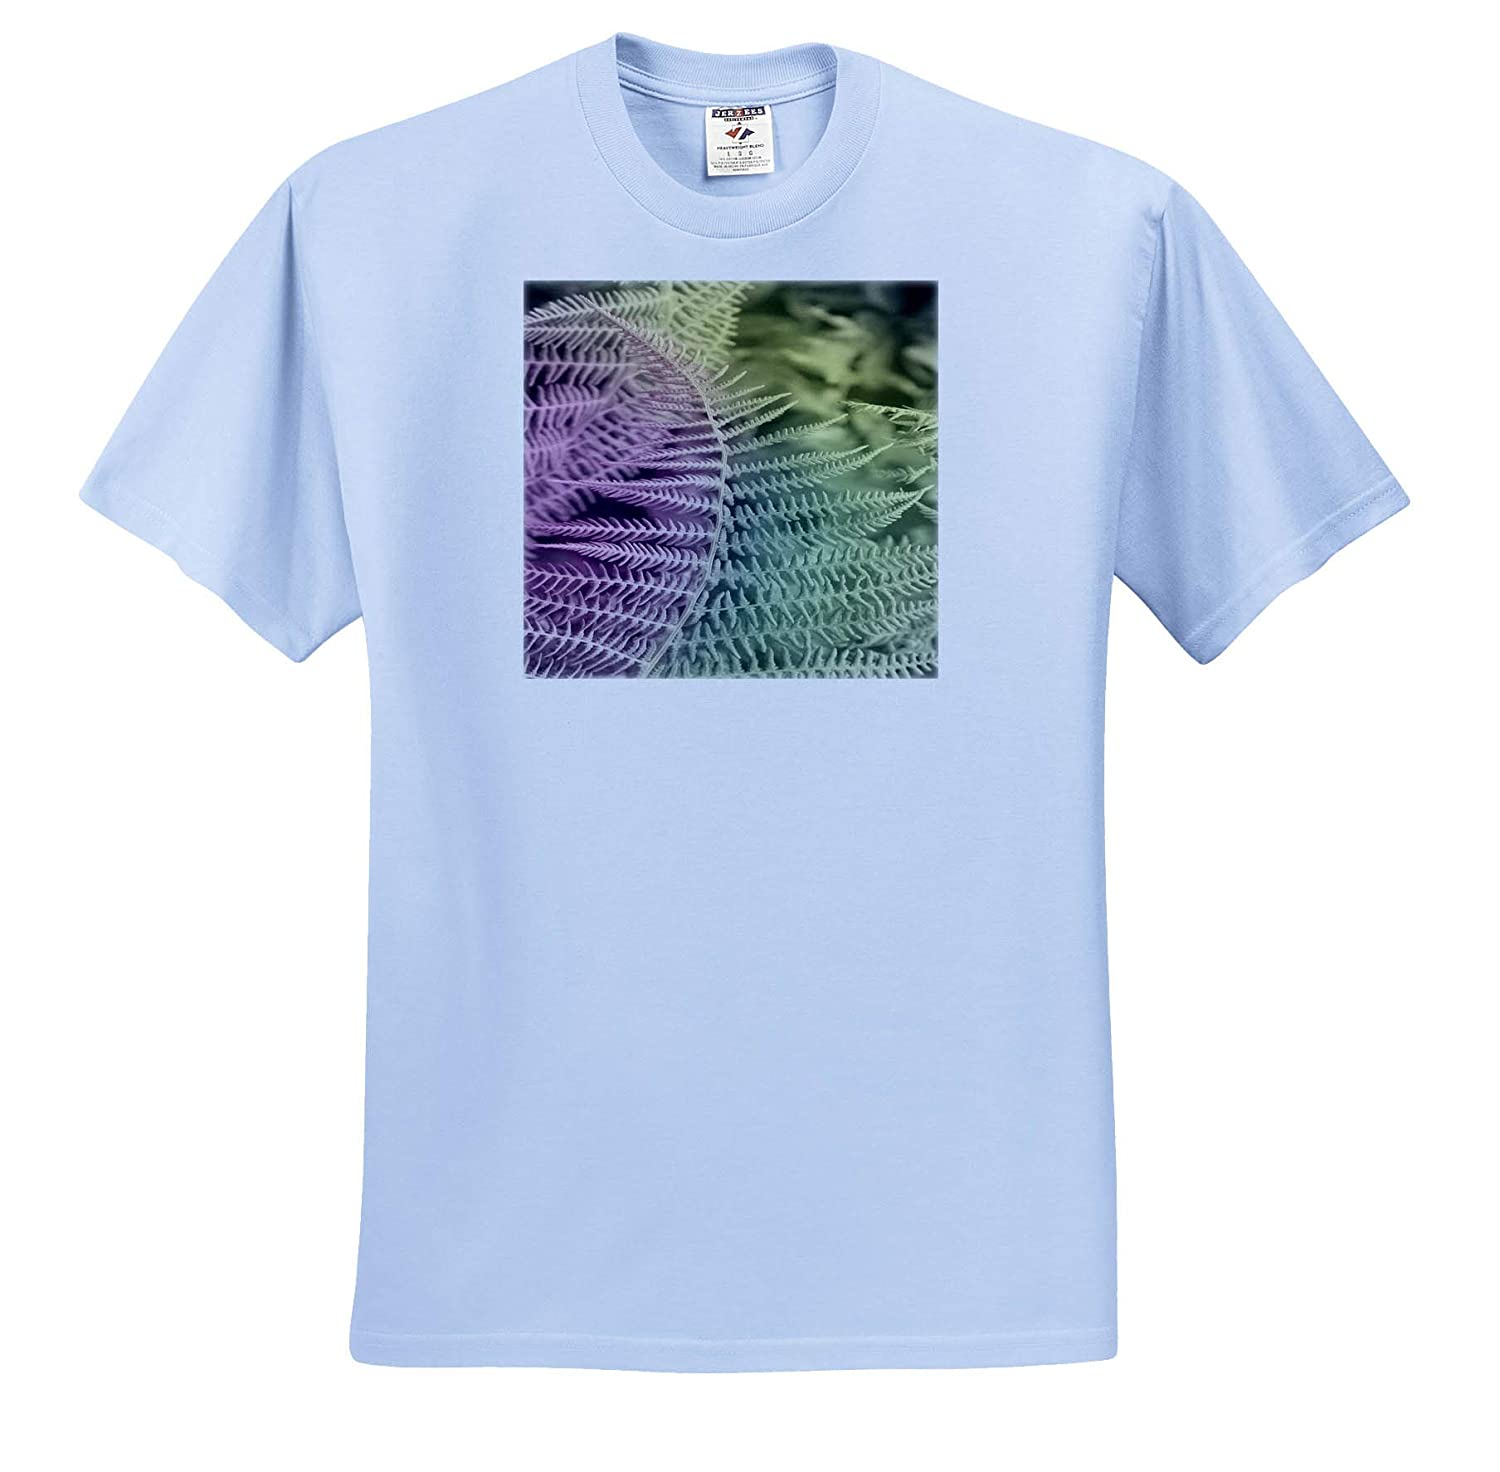 Photograph Pastel Fern Manipulated Photograph of Fern T-Shirts 3dRose Made in The Highlands